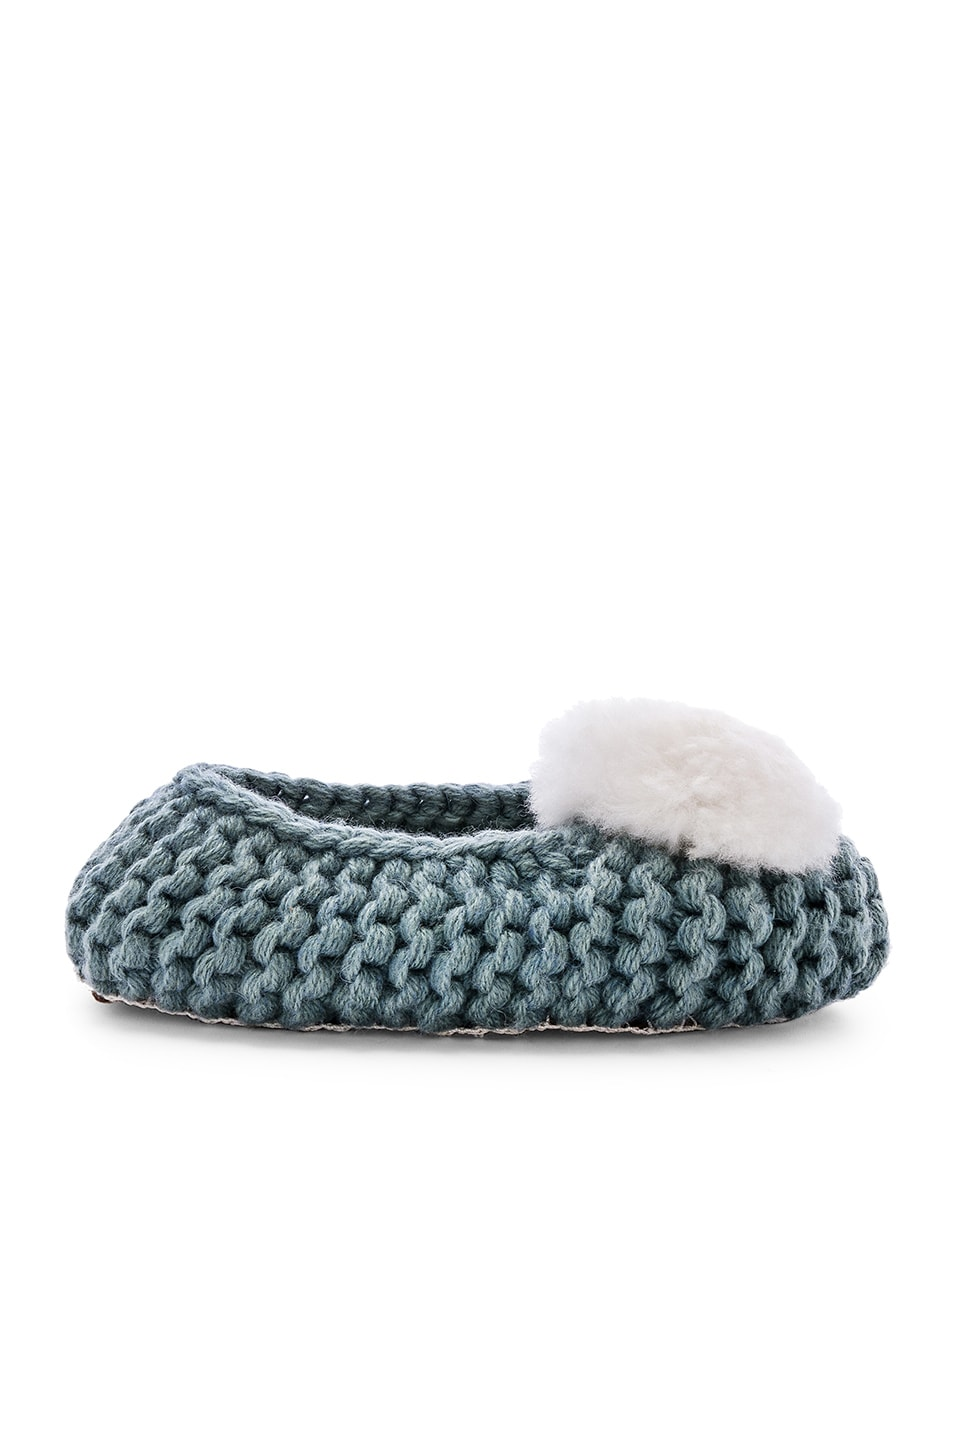 ARIANA BOHLING Ballerina Fur Pom Slipper in Green